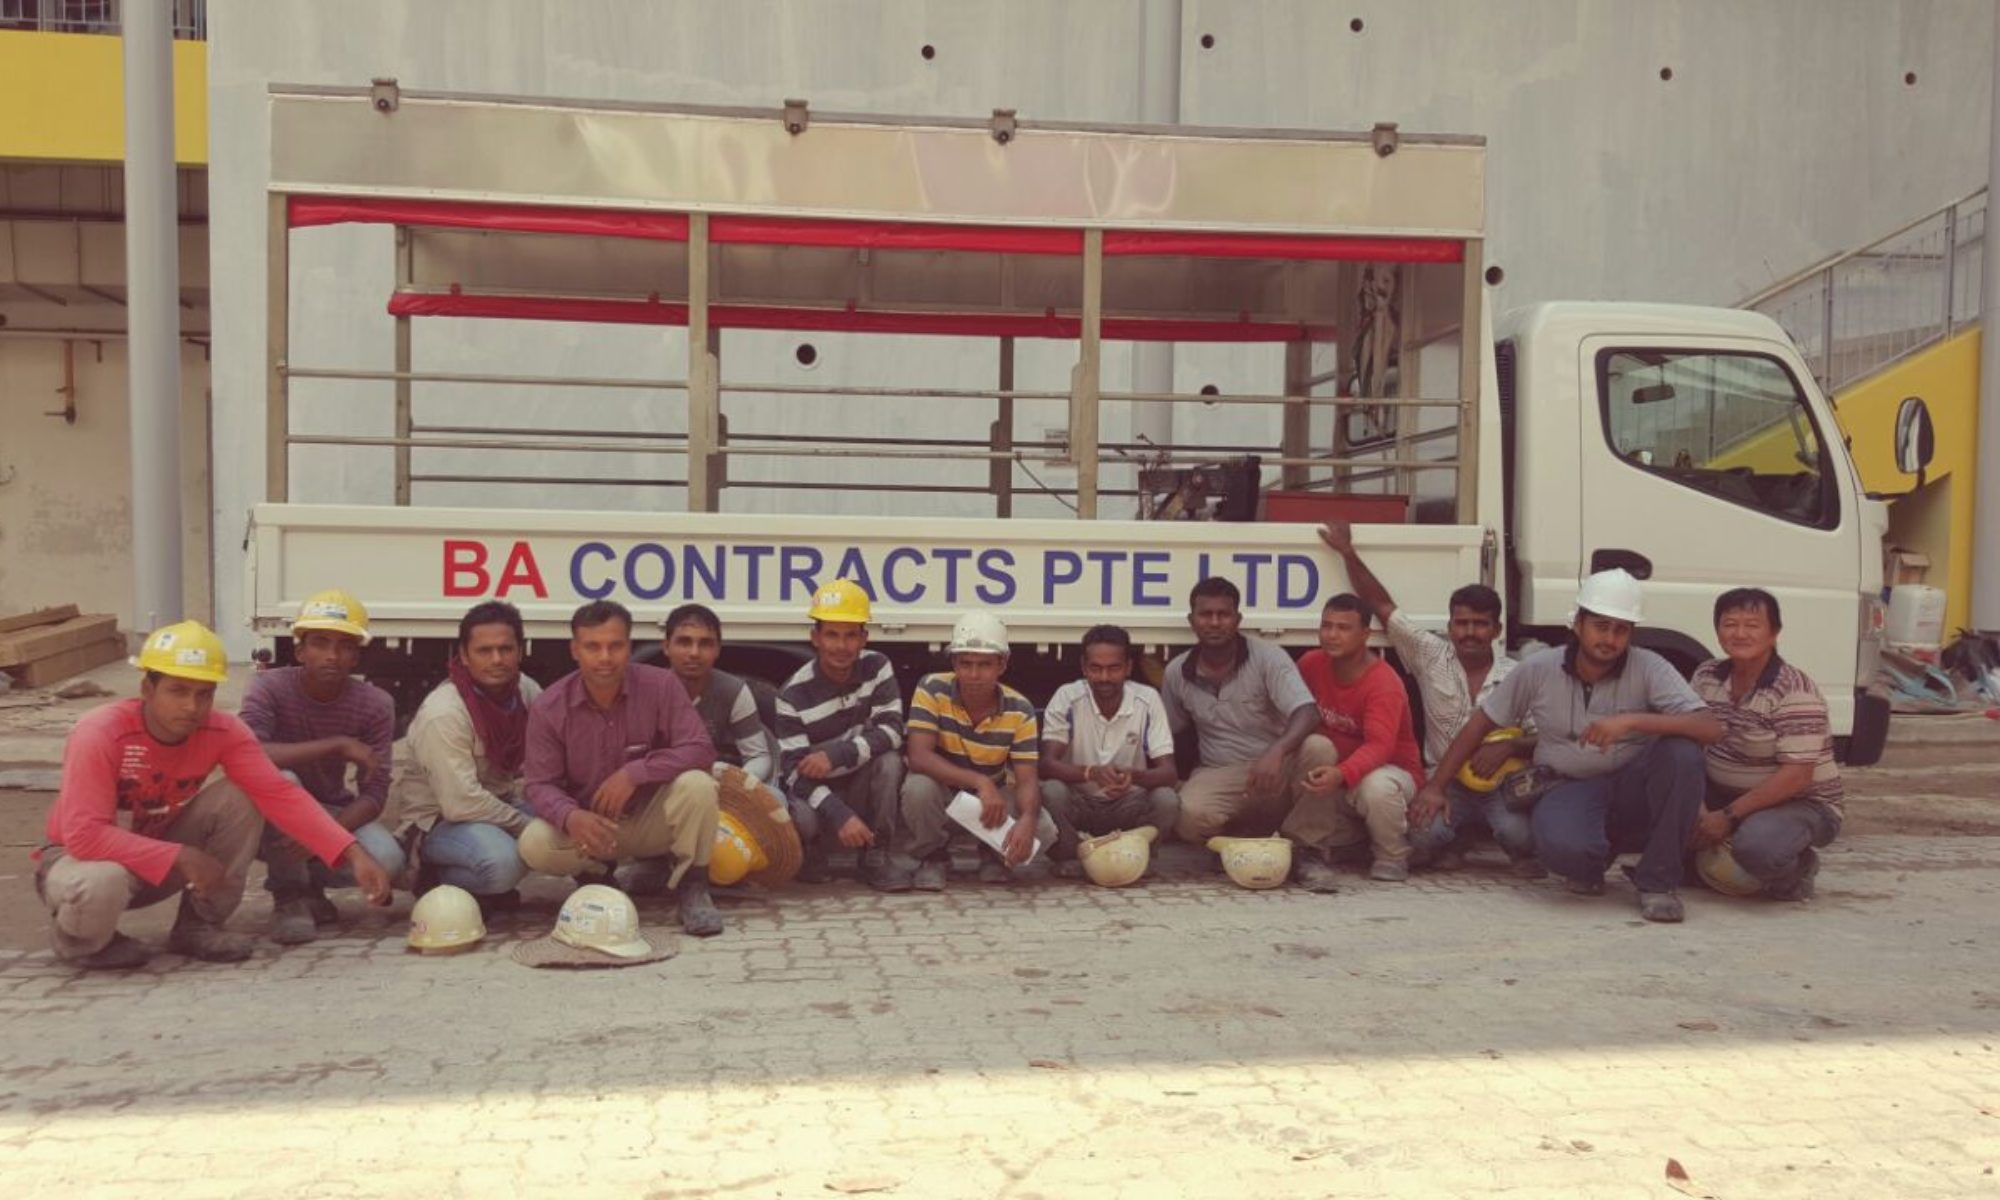 BA Contracts Pte Ltd